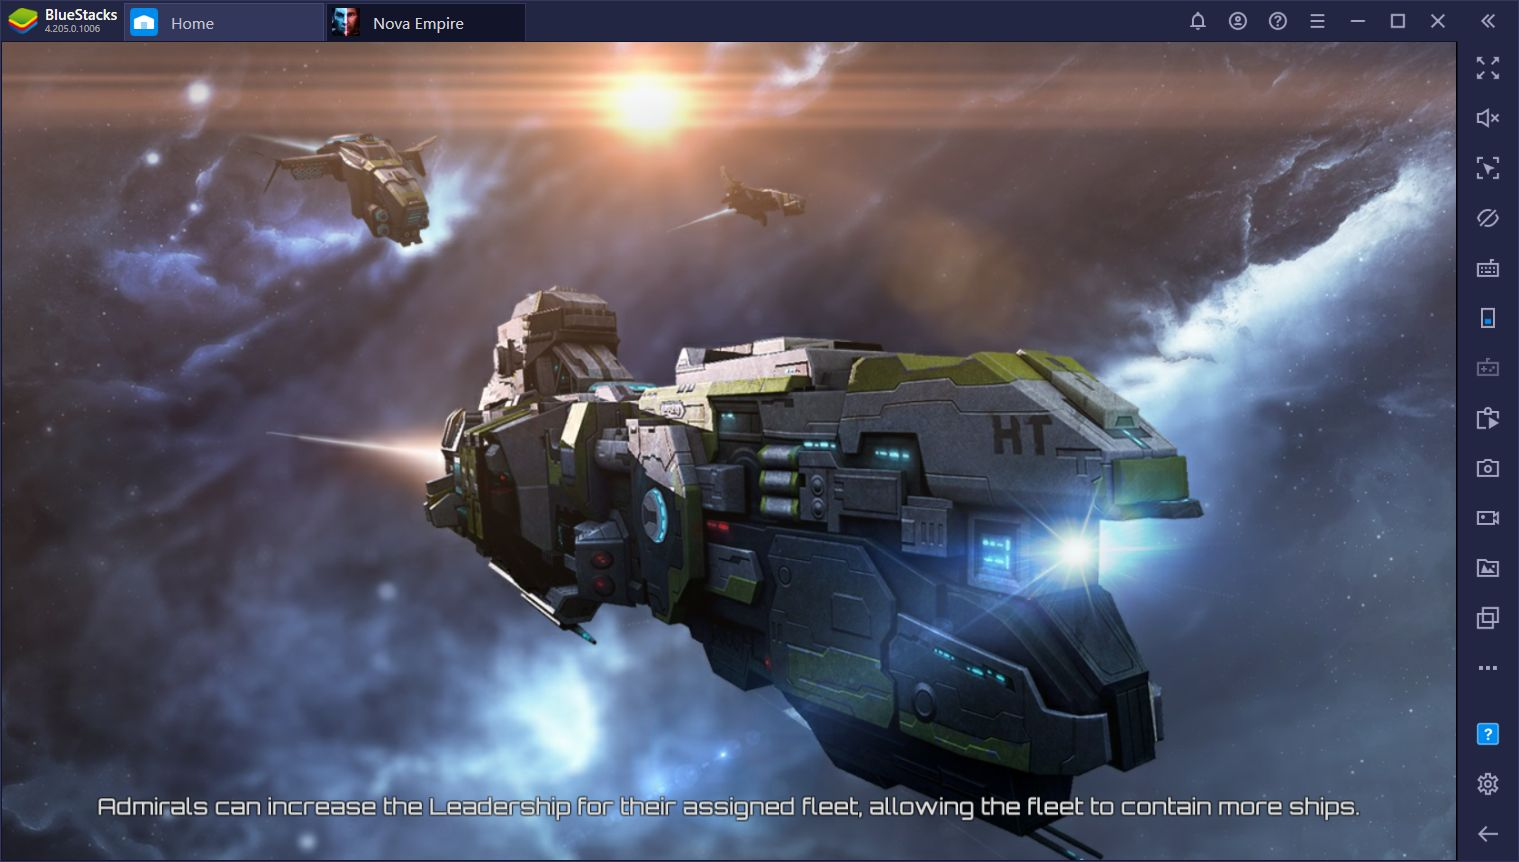 Nova Empire: Space Commander on PC - The Best Tips and Tricks for Beginners